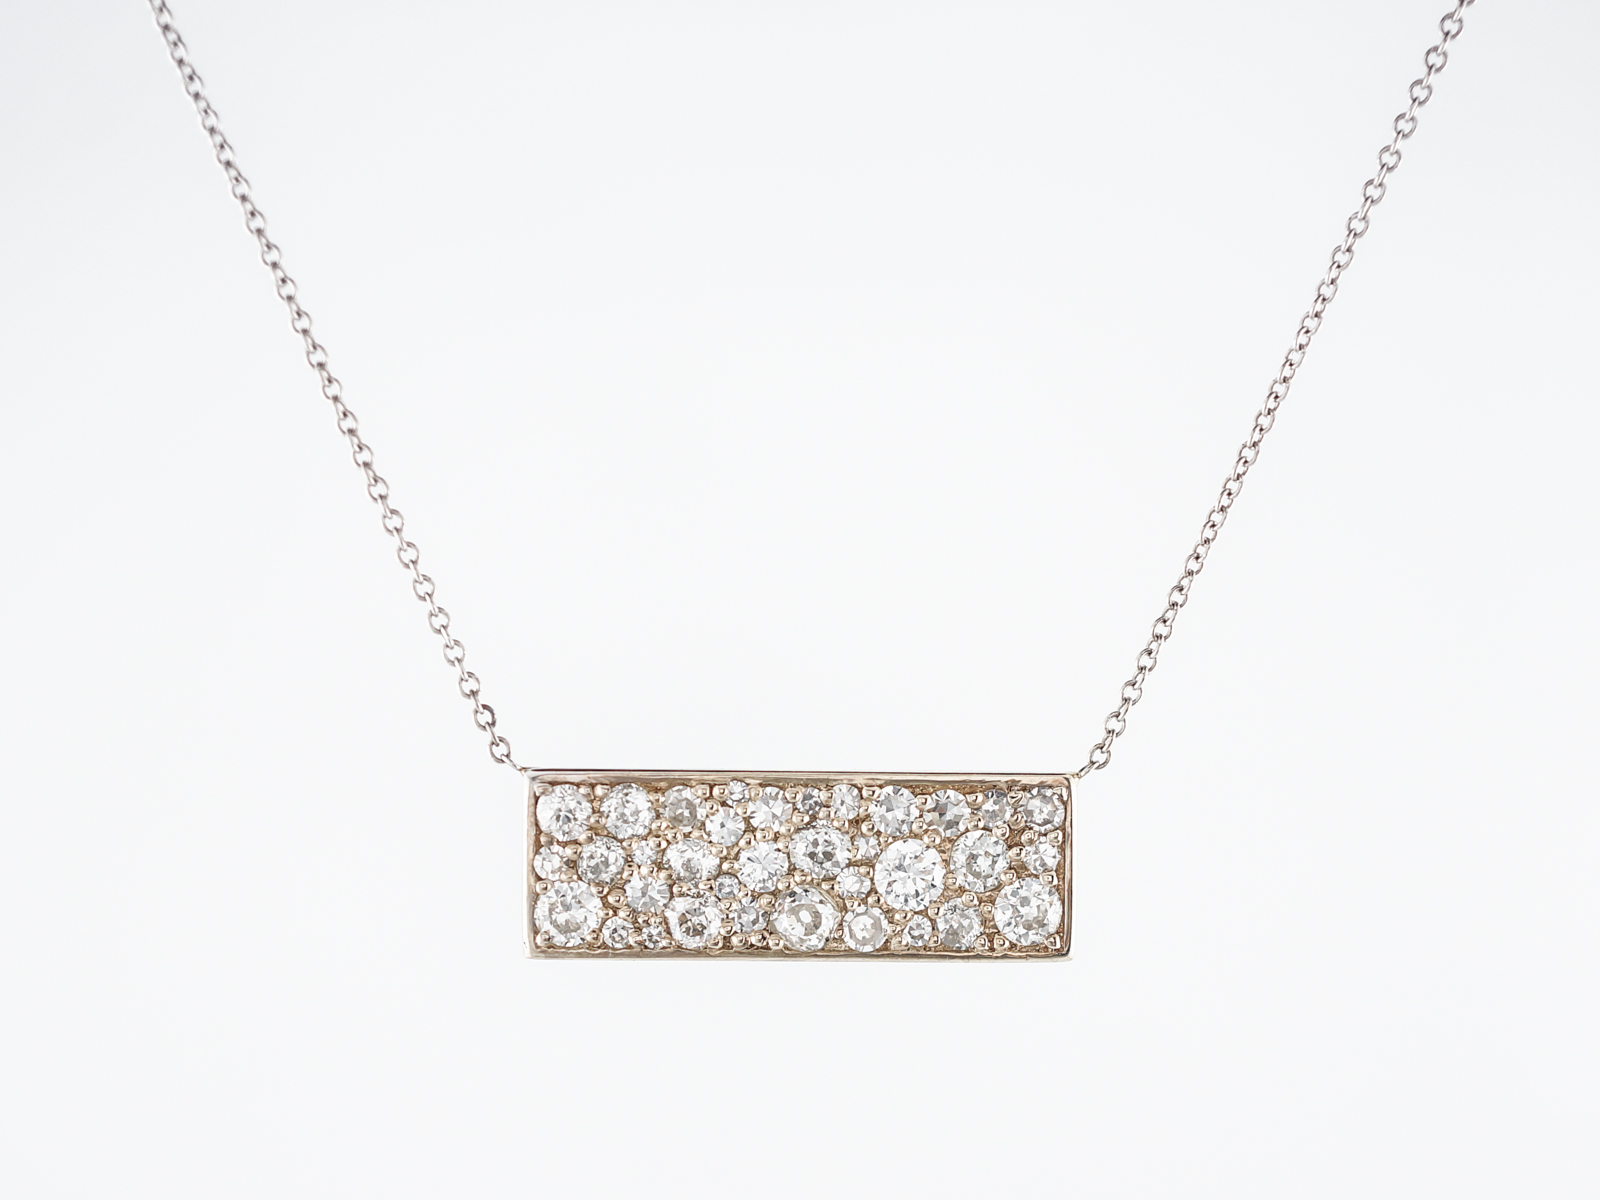 Modern Necklace 1.46 Old European, Mine & Single Cut Diamonds in 14k White Gold -1